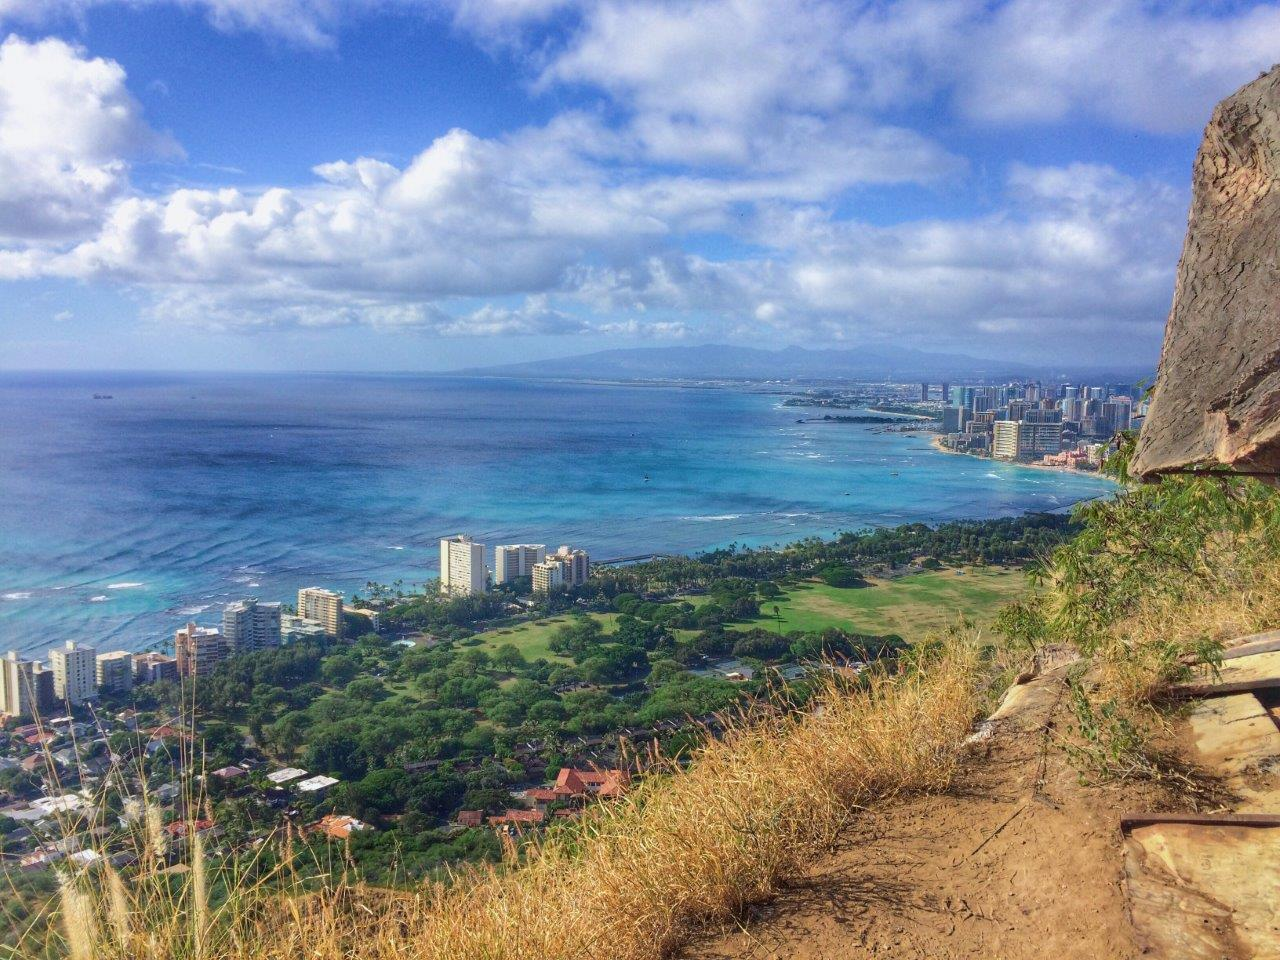 6 Hikes You Must Do on Oahu